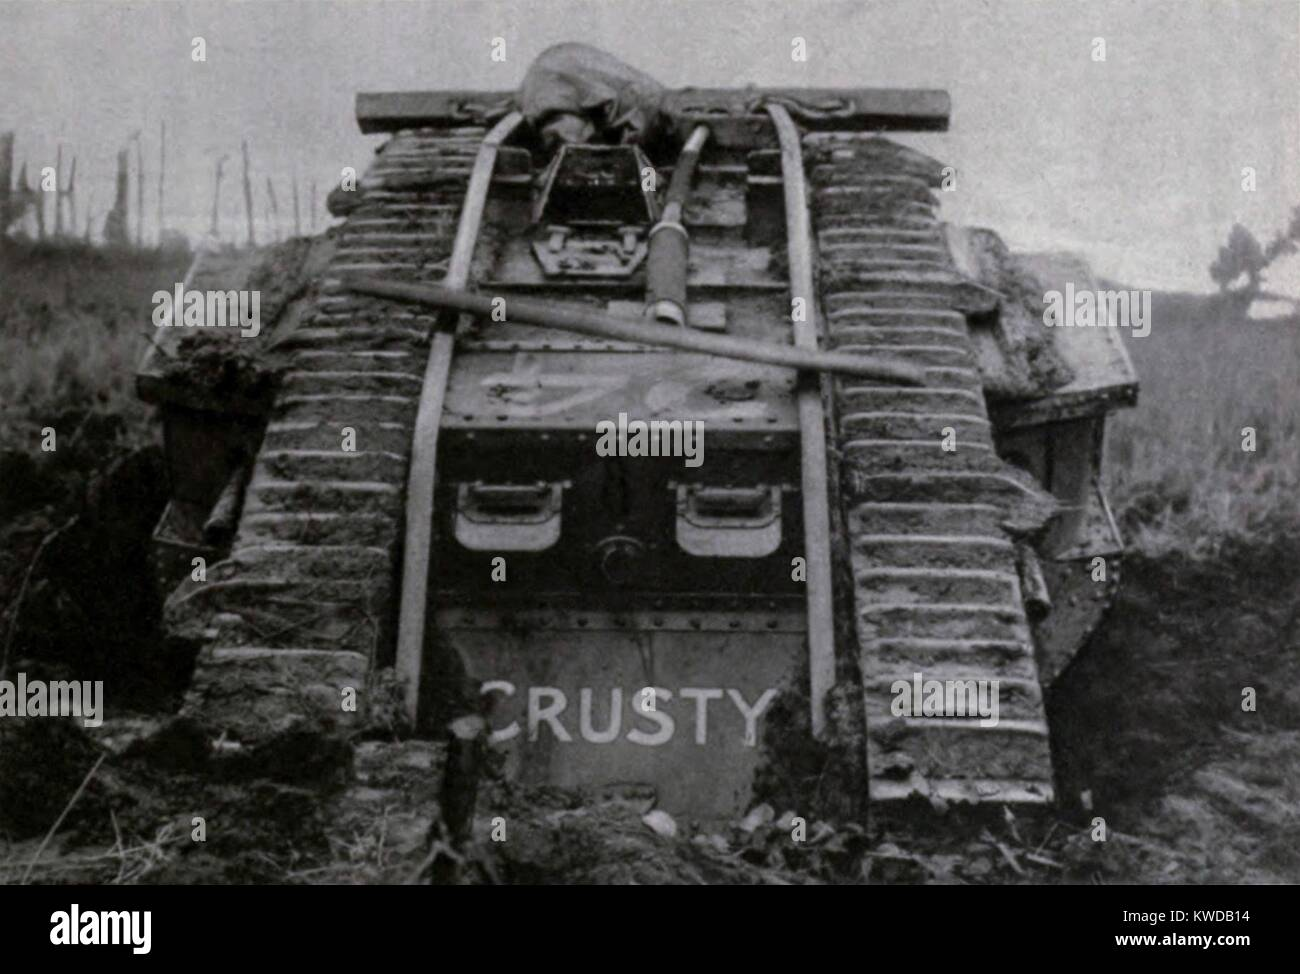 World War 1. British Mark IV Tank named Crusty prior to battle of Cambrai. 1917. (BSLOC_2013_1_150) - Stock Image